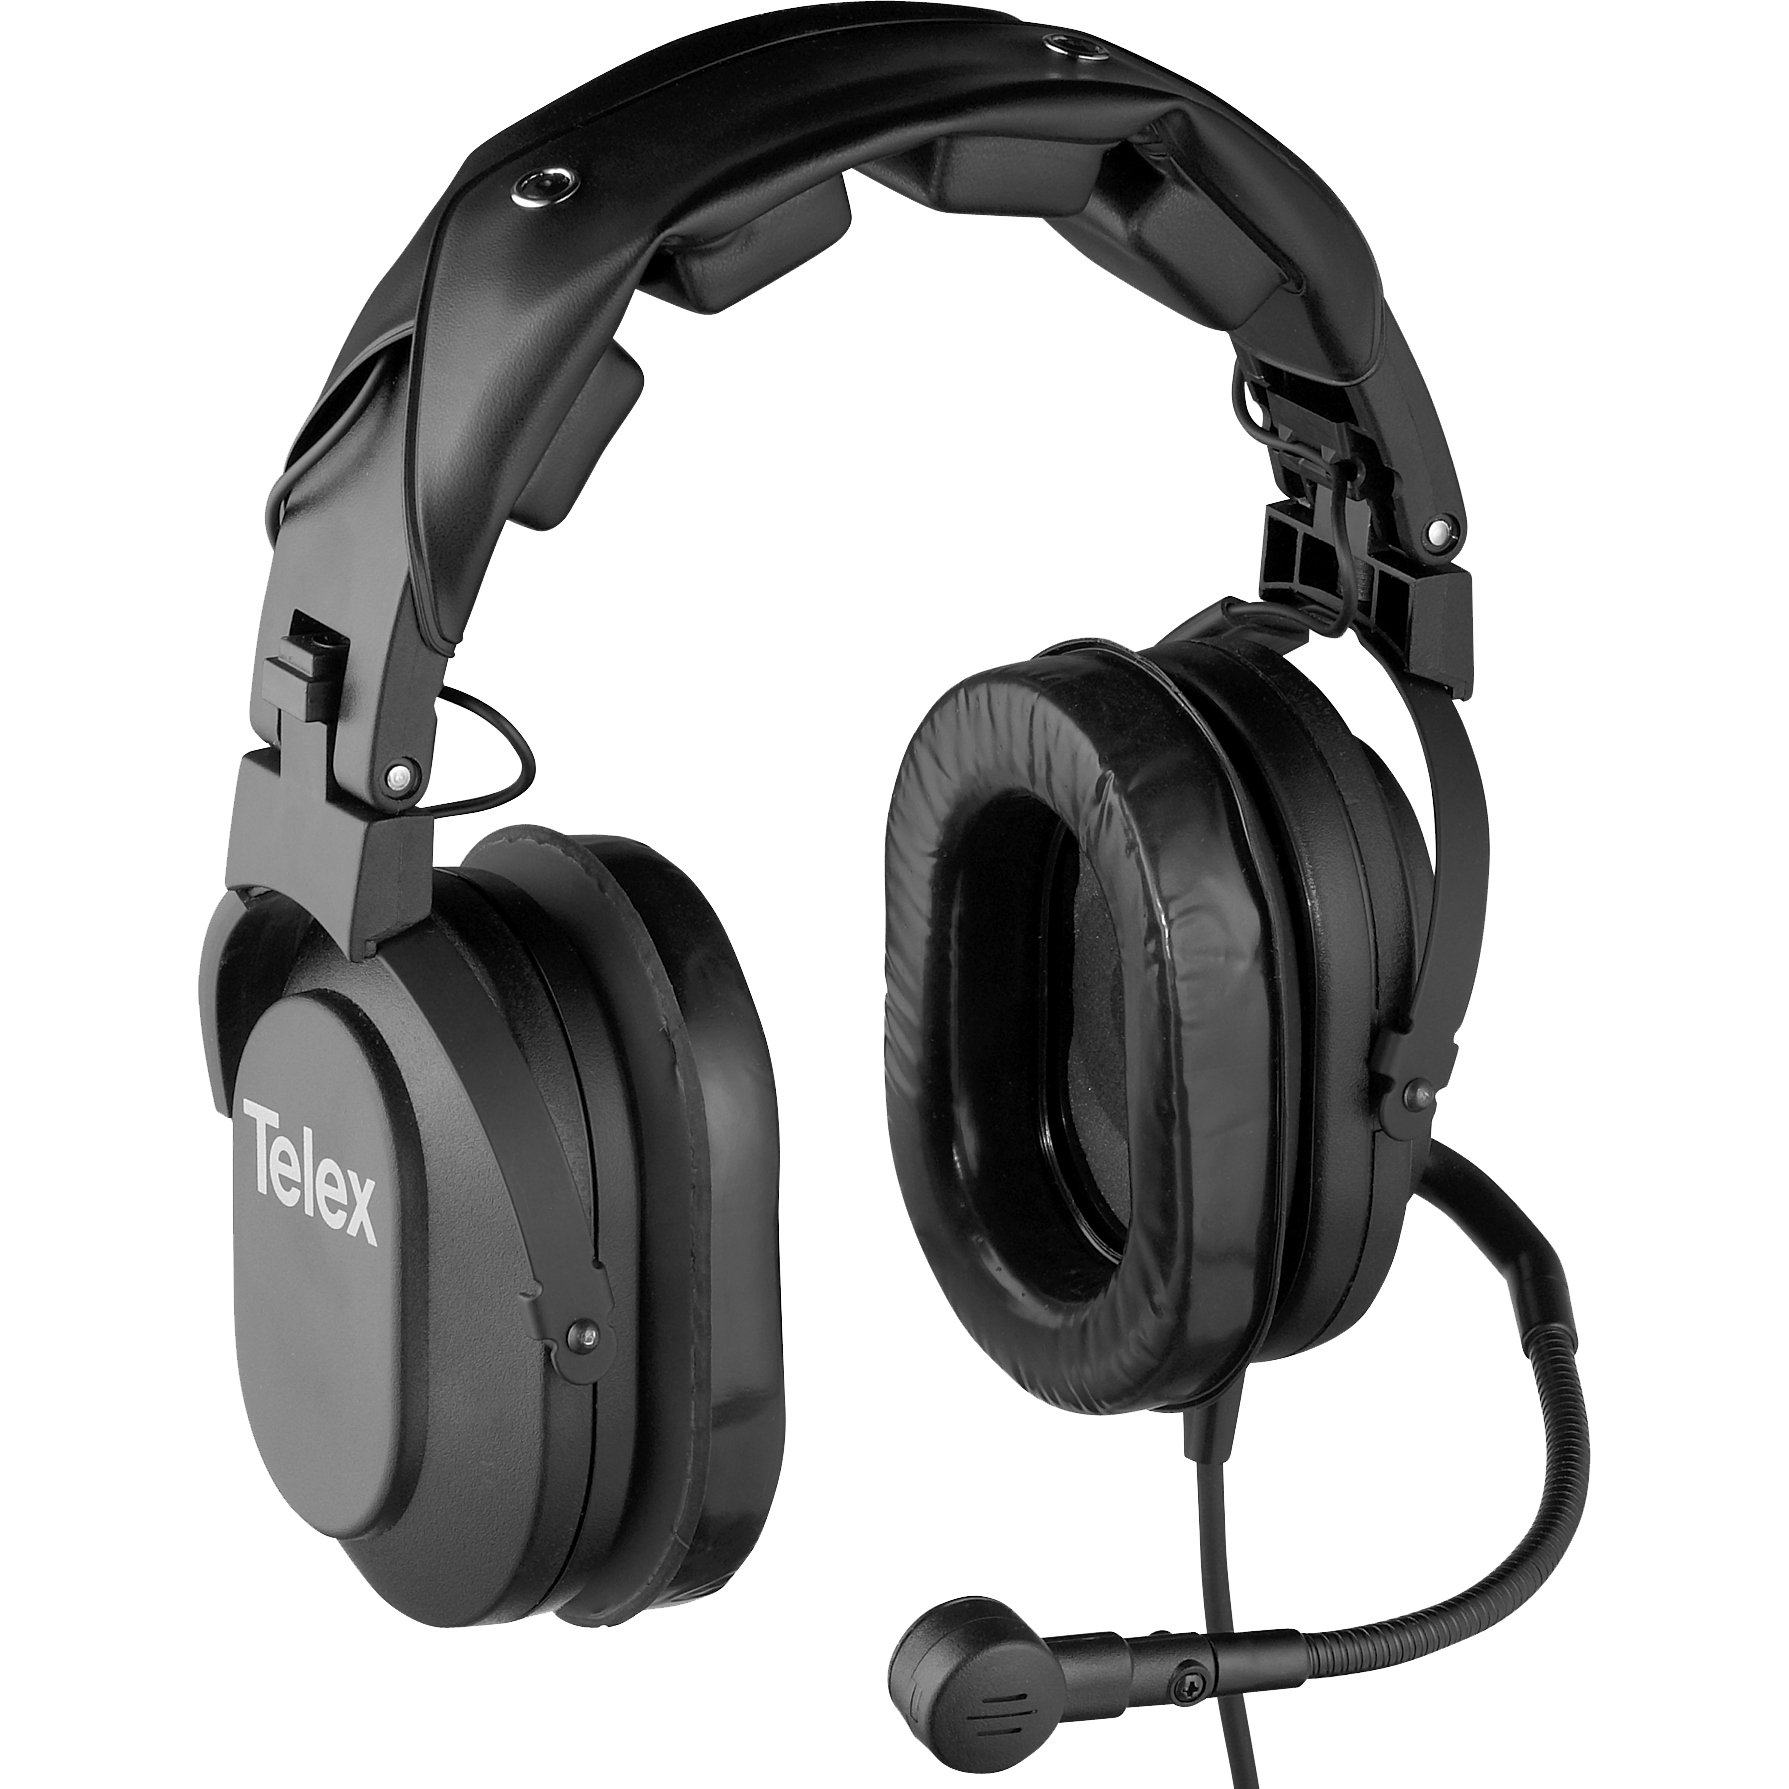 Dual-sided Medium-weight Passive Noise Reduction Headset, A4F Connector